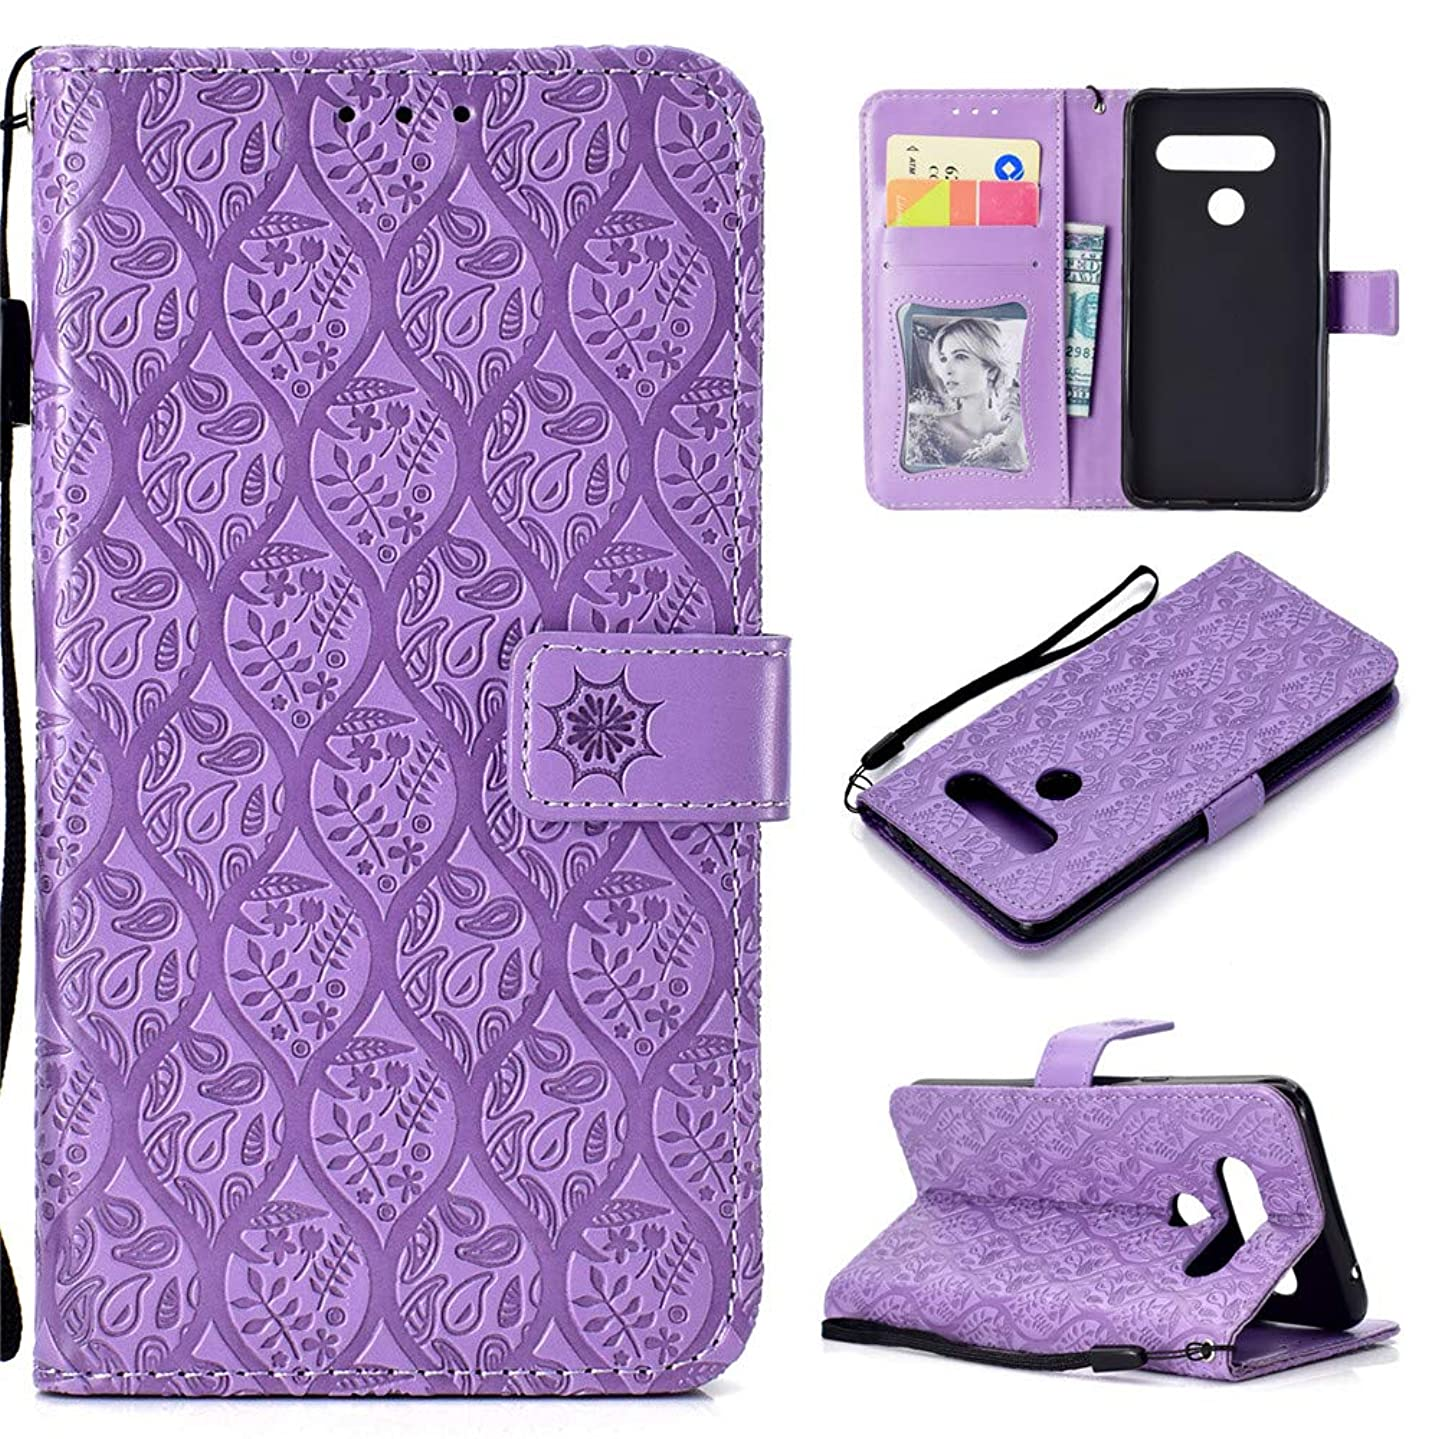 LG V40 ThinQ Case, LG V40 Wallet Case,MEUPZZK Flip PU Leather Protective Case,[Magnetic Closure],Kickstand with Card Slots and Wrist Strap for LG V40 / V40 ThinQ (Purple)